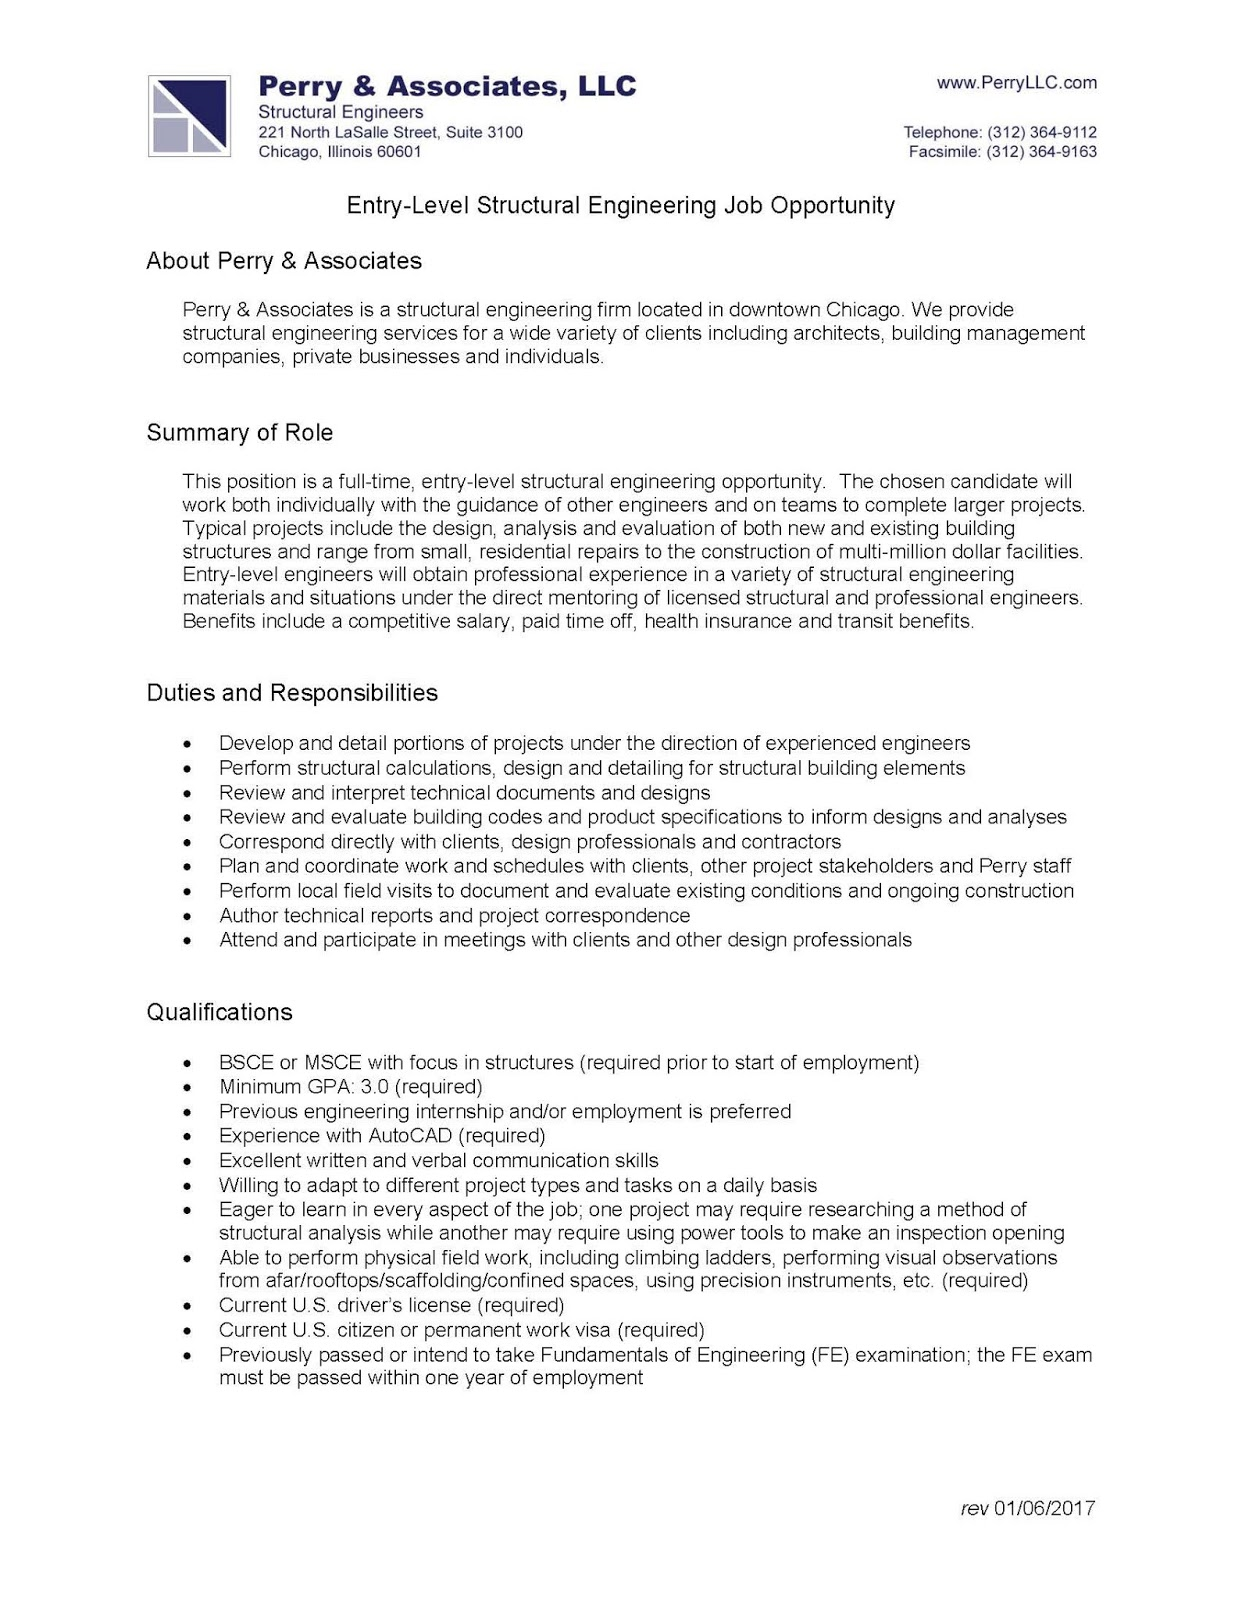 Structural Engineer Job Description | Purdue Lyles School Of Civil Engineering Student Information And